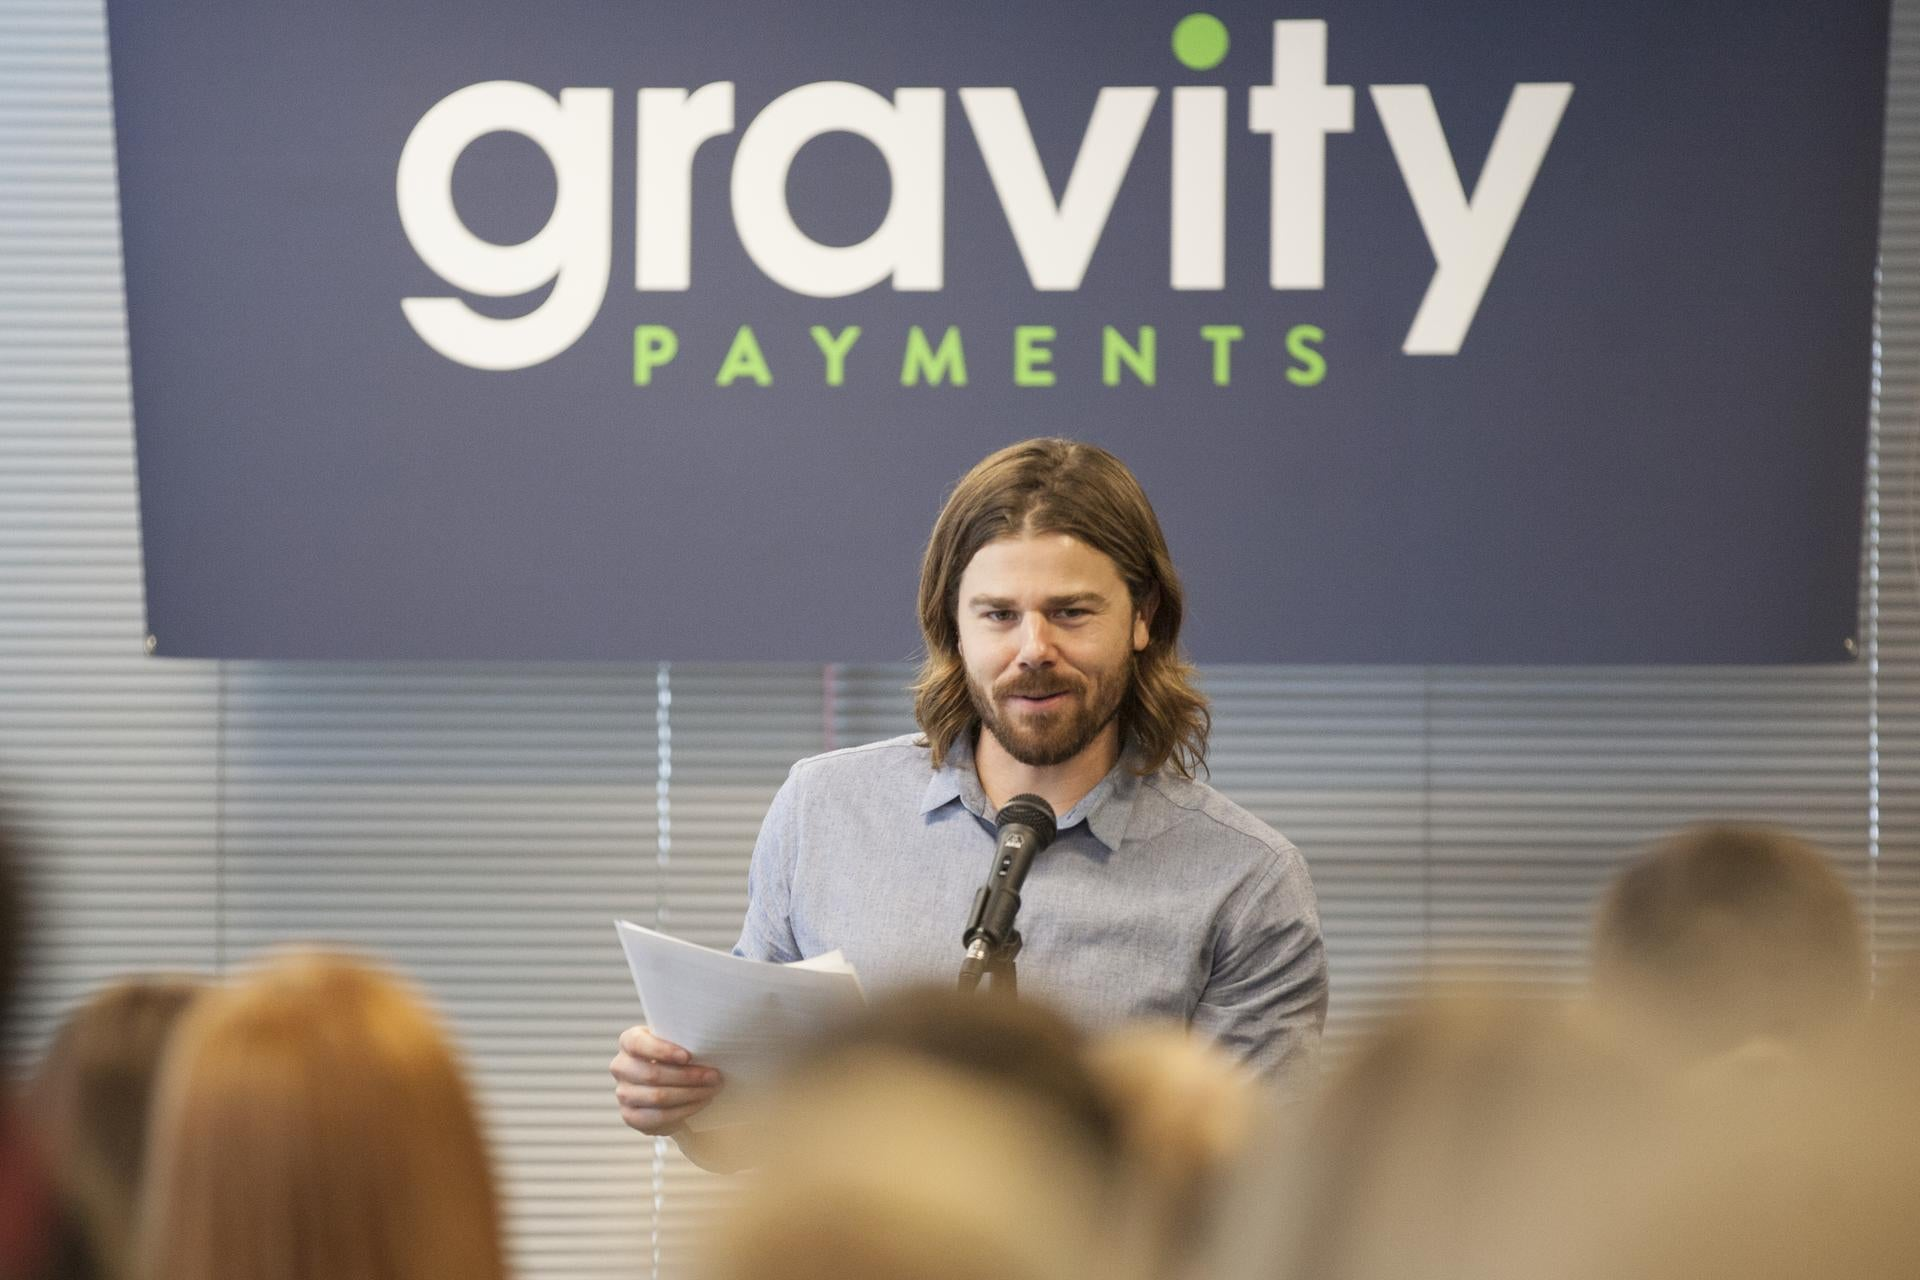 Dan Price, chief executive of Gravity Payments, announces a plan to his employees that will raise the company's minimum wage to $70,000 a year within two years, at offices in Seattle, April 13, 2015. While the overwhelming majority of the responses on social media and elsewhere to Price's decision to set a minimum wage of $70,000 a year at his company were positive, there were also a number of skeptics and naysayers. (Matthew Ryan Williams/The New York Times)